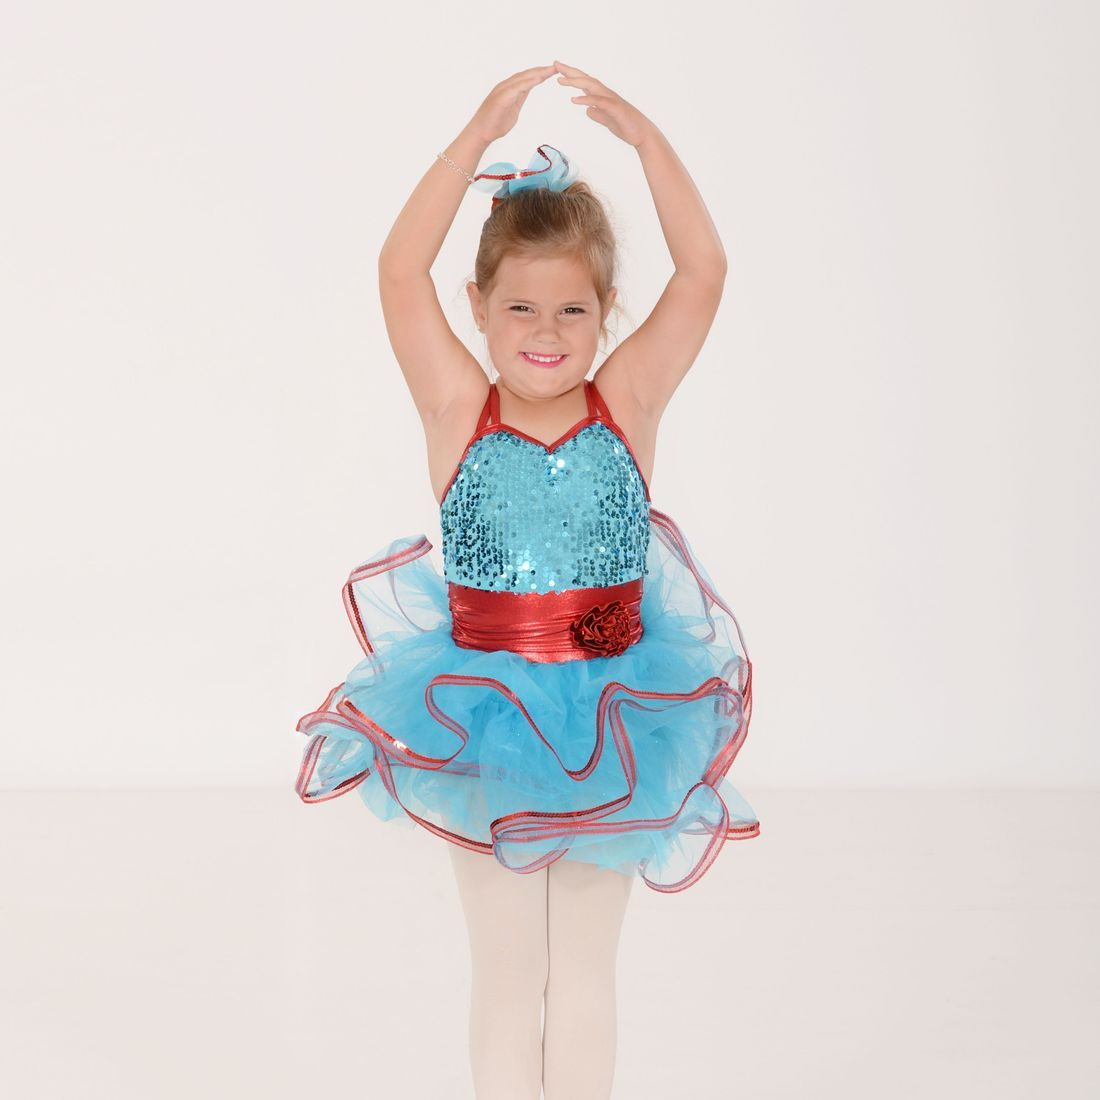 combination class that consists of ballet, creative movement, & tap